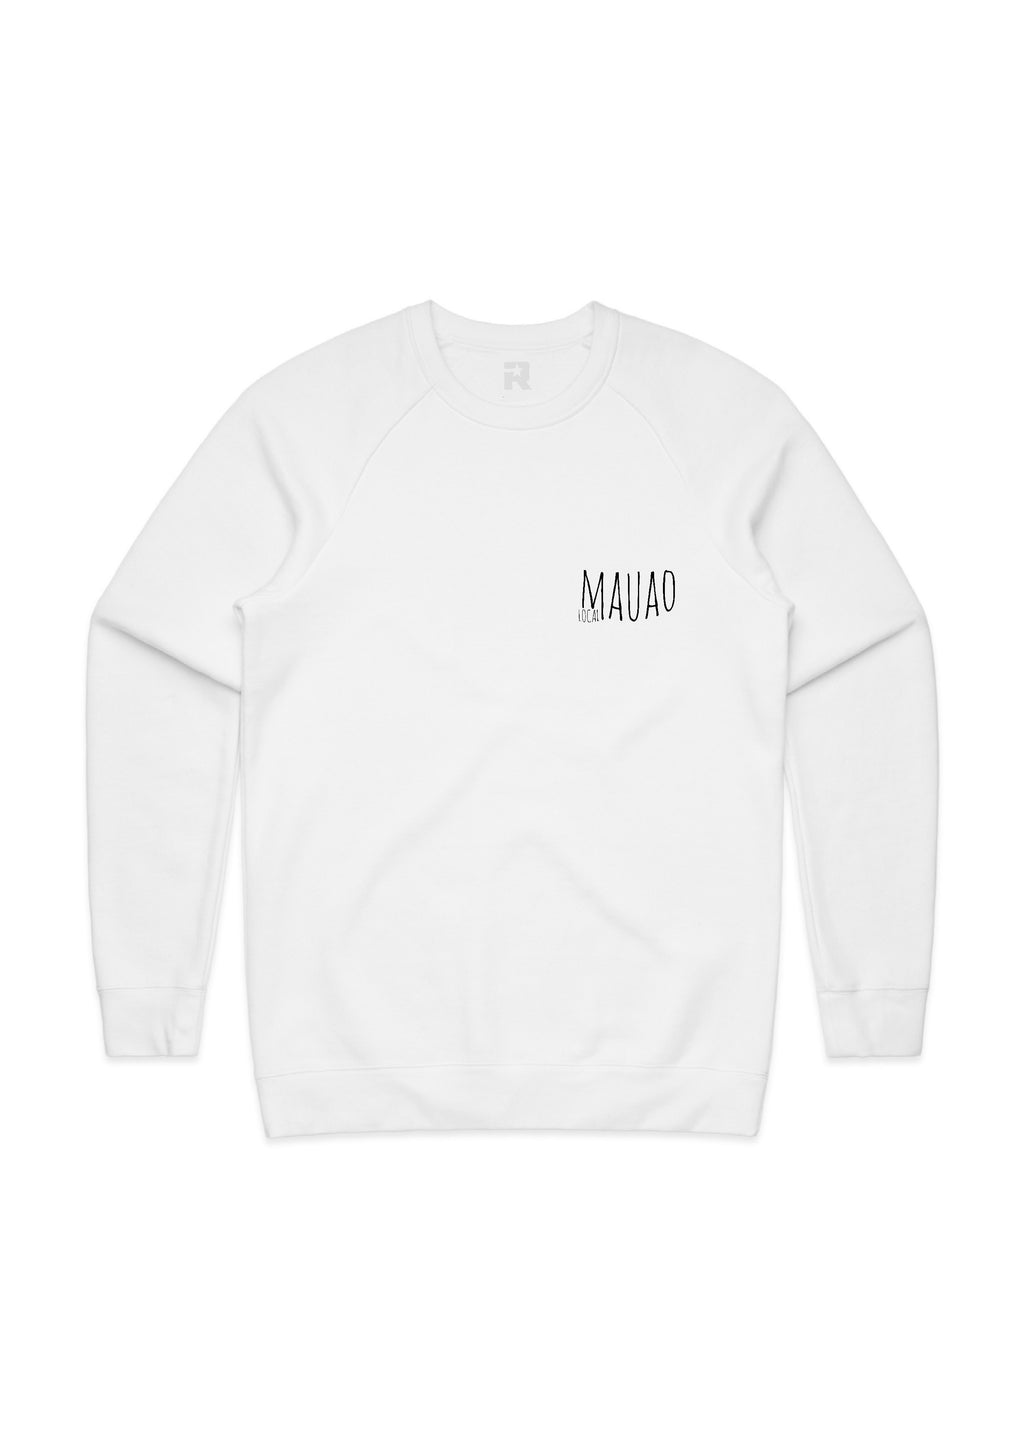 White Mauao Local sweatshirt